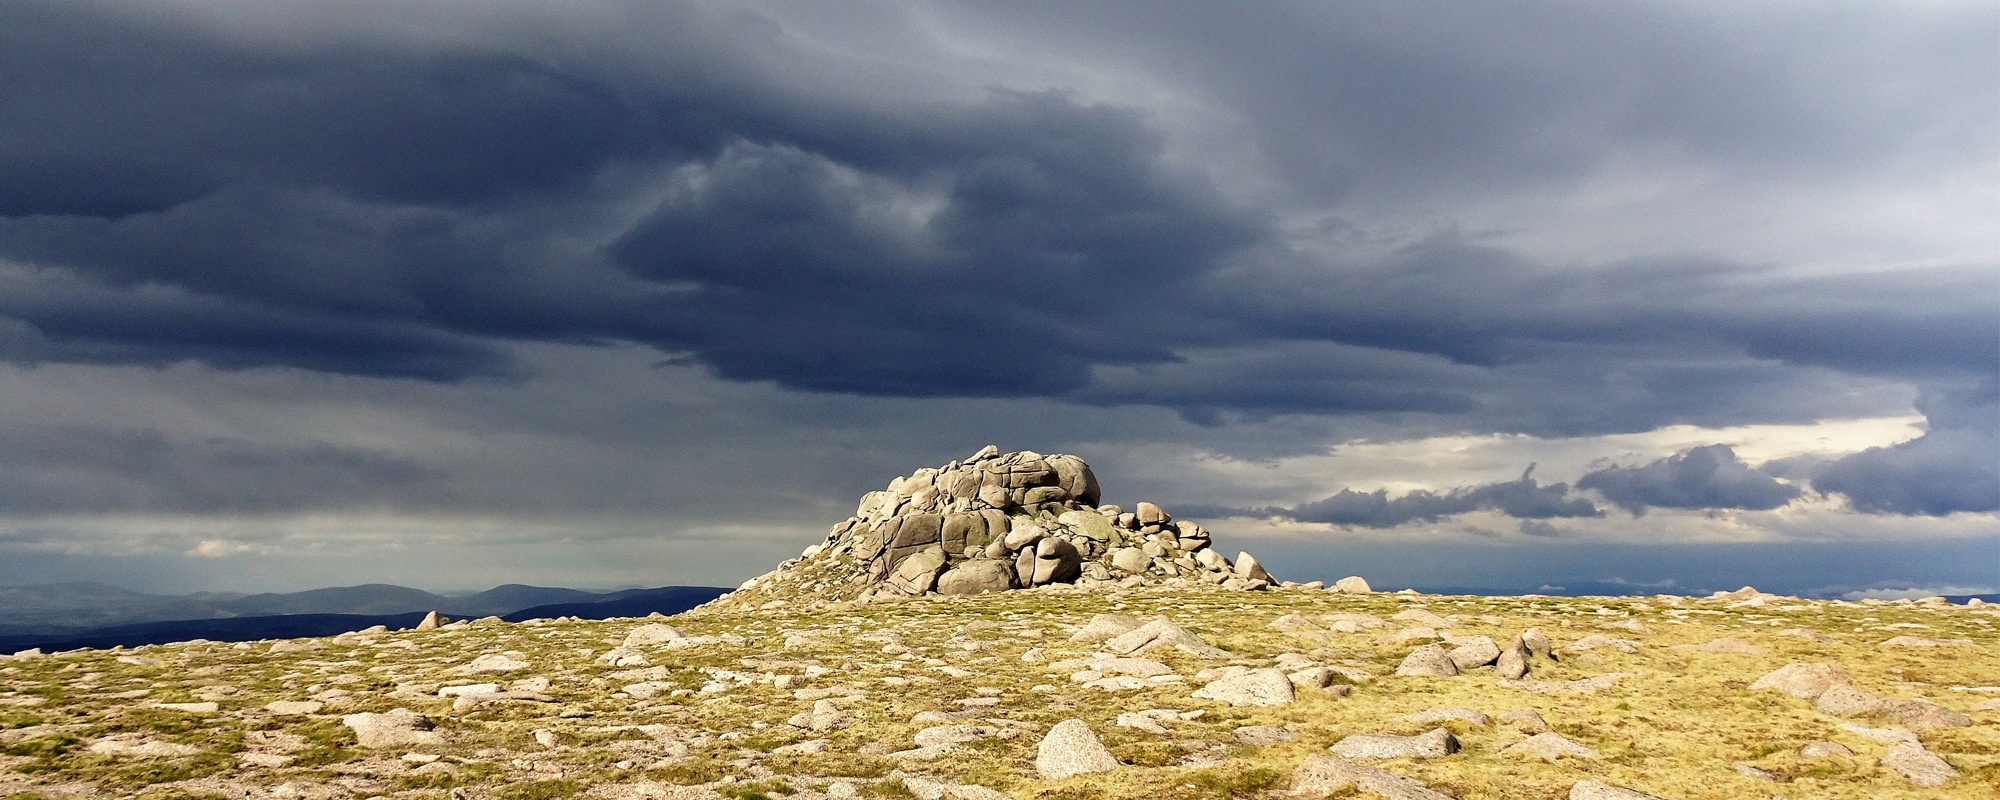 The summit of Ben Avon in the Cairngorms bathed in light with a stormy sky